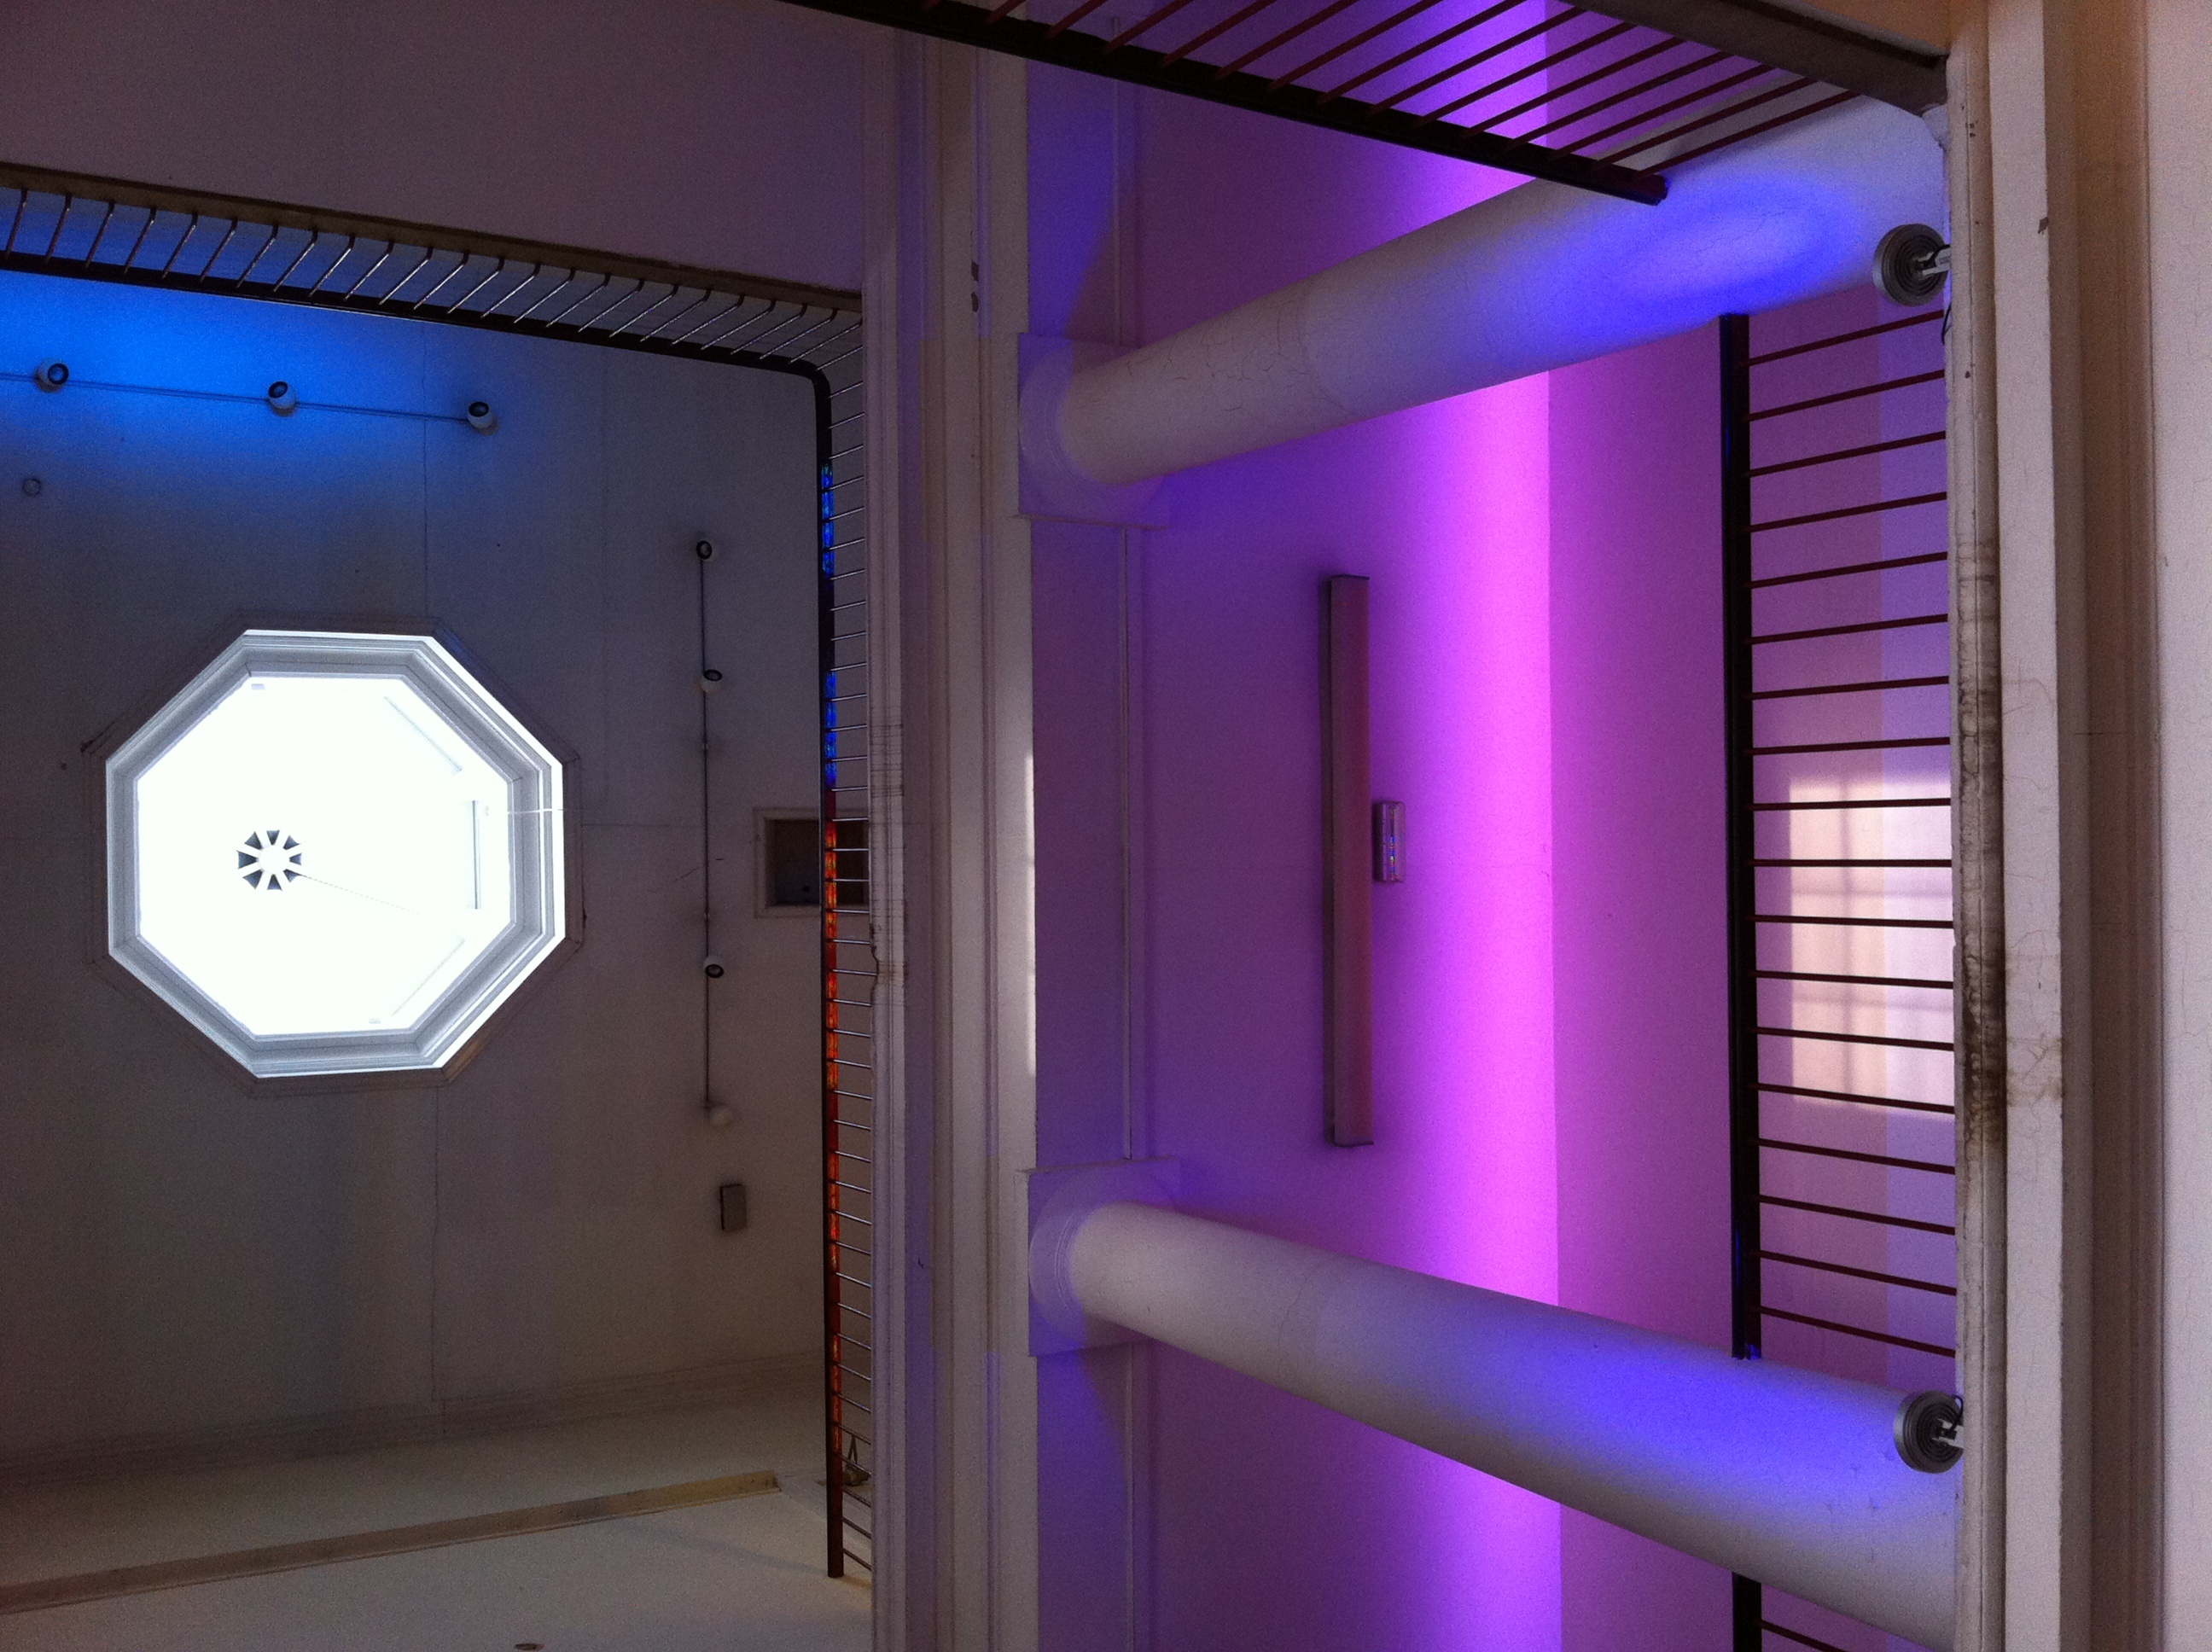 Exhibition and feature lighting was provided and installed by Atrivm lighting